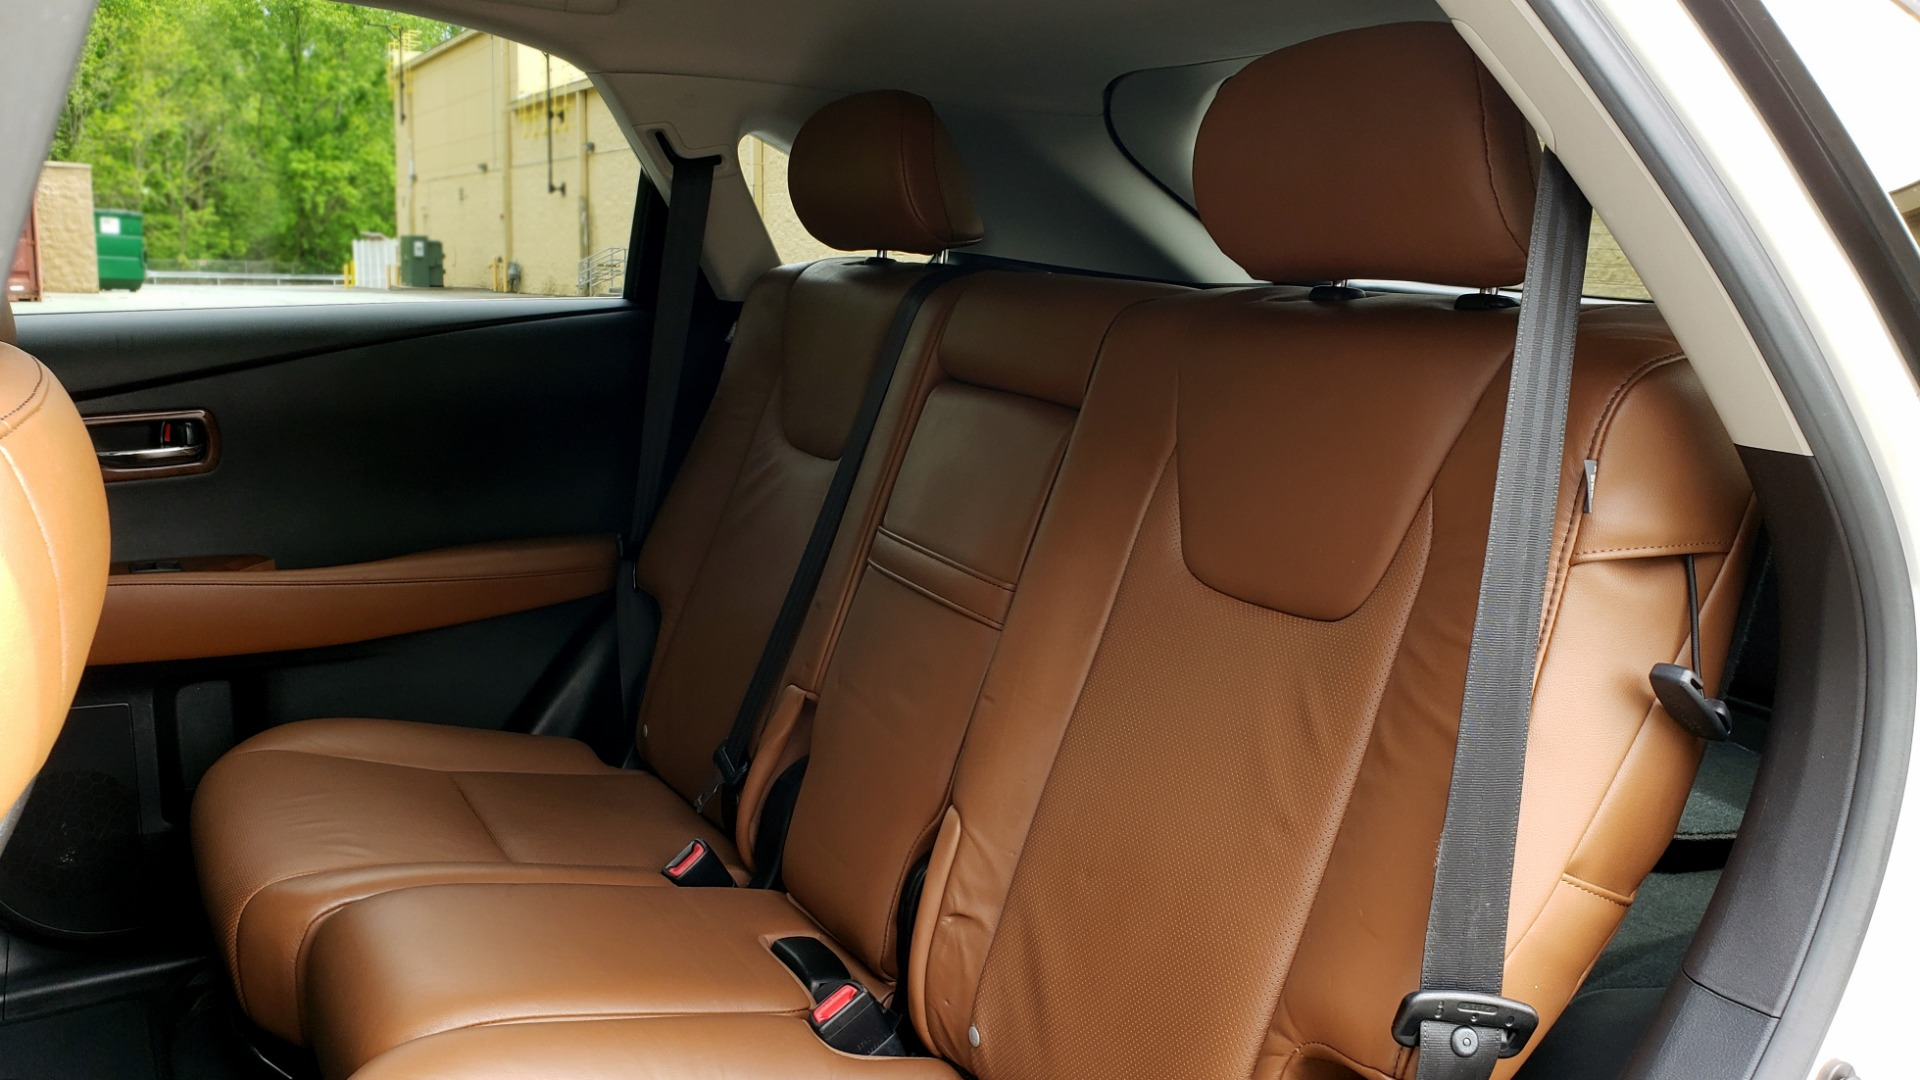 Used 2013 Lexus RX 350 PREMIUM PKG / SUNROOF / BSM / PARK ASST / REARVIEW for sale Sold at Formula Imports in Charlotte NC 28227 62